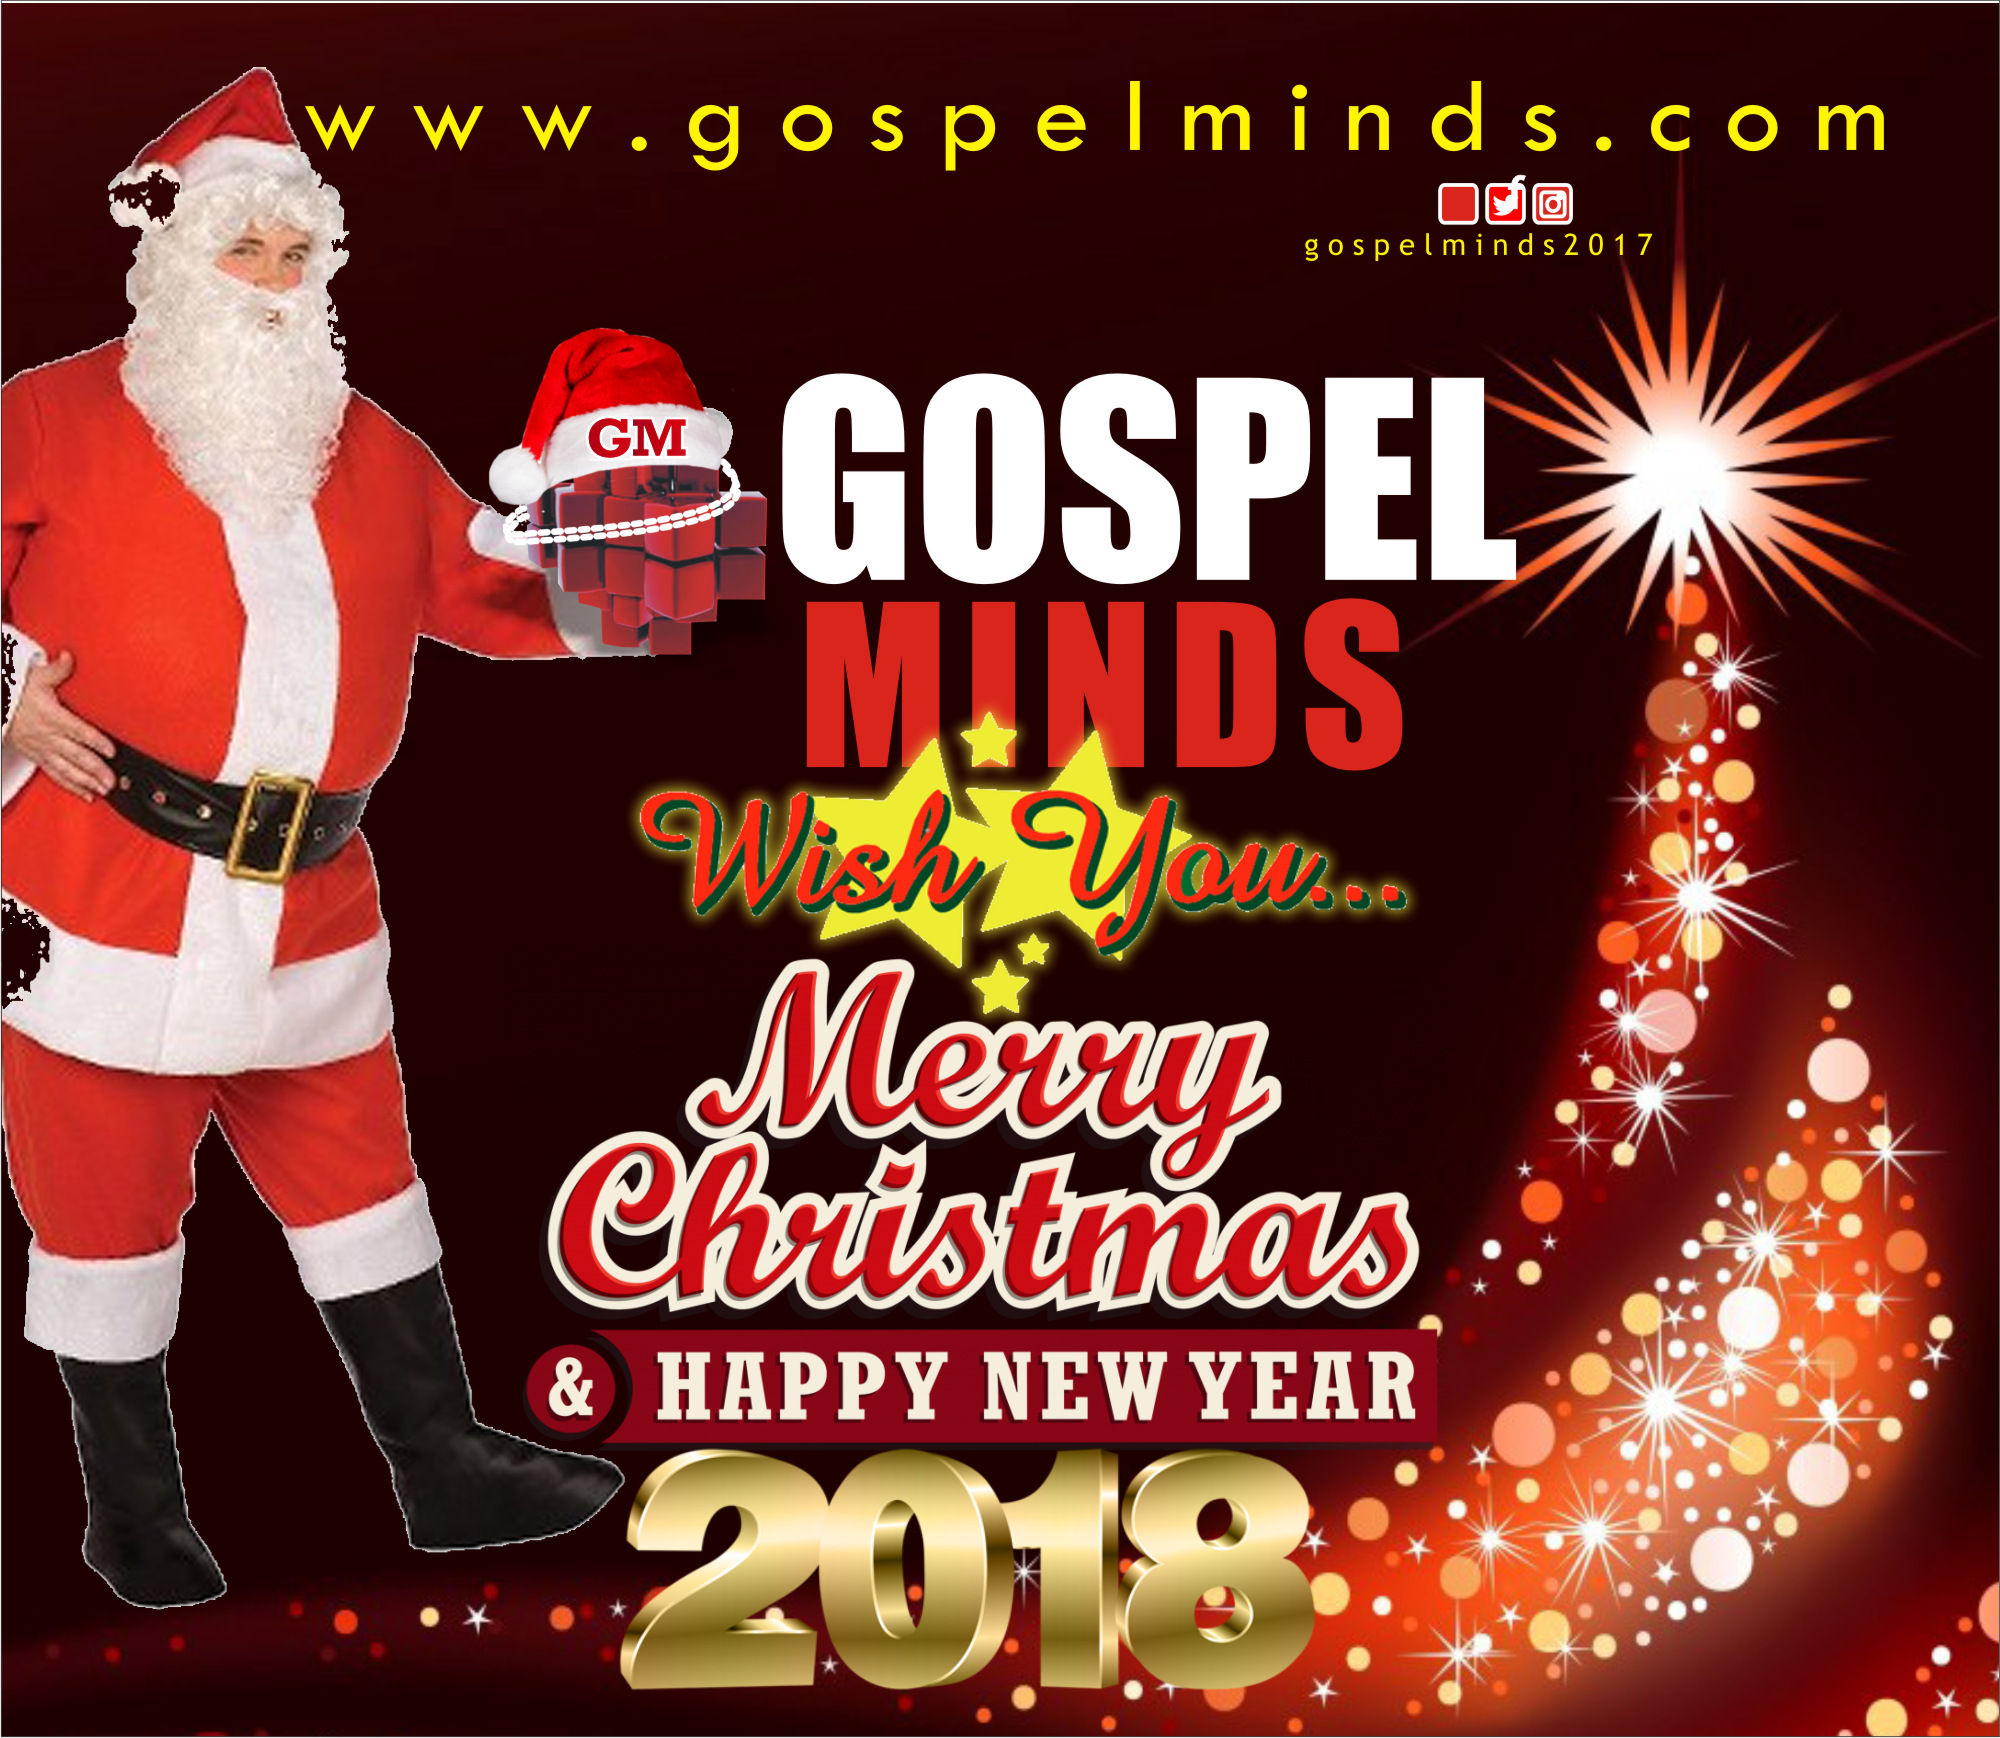 GOSPEL MINDS